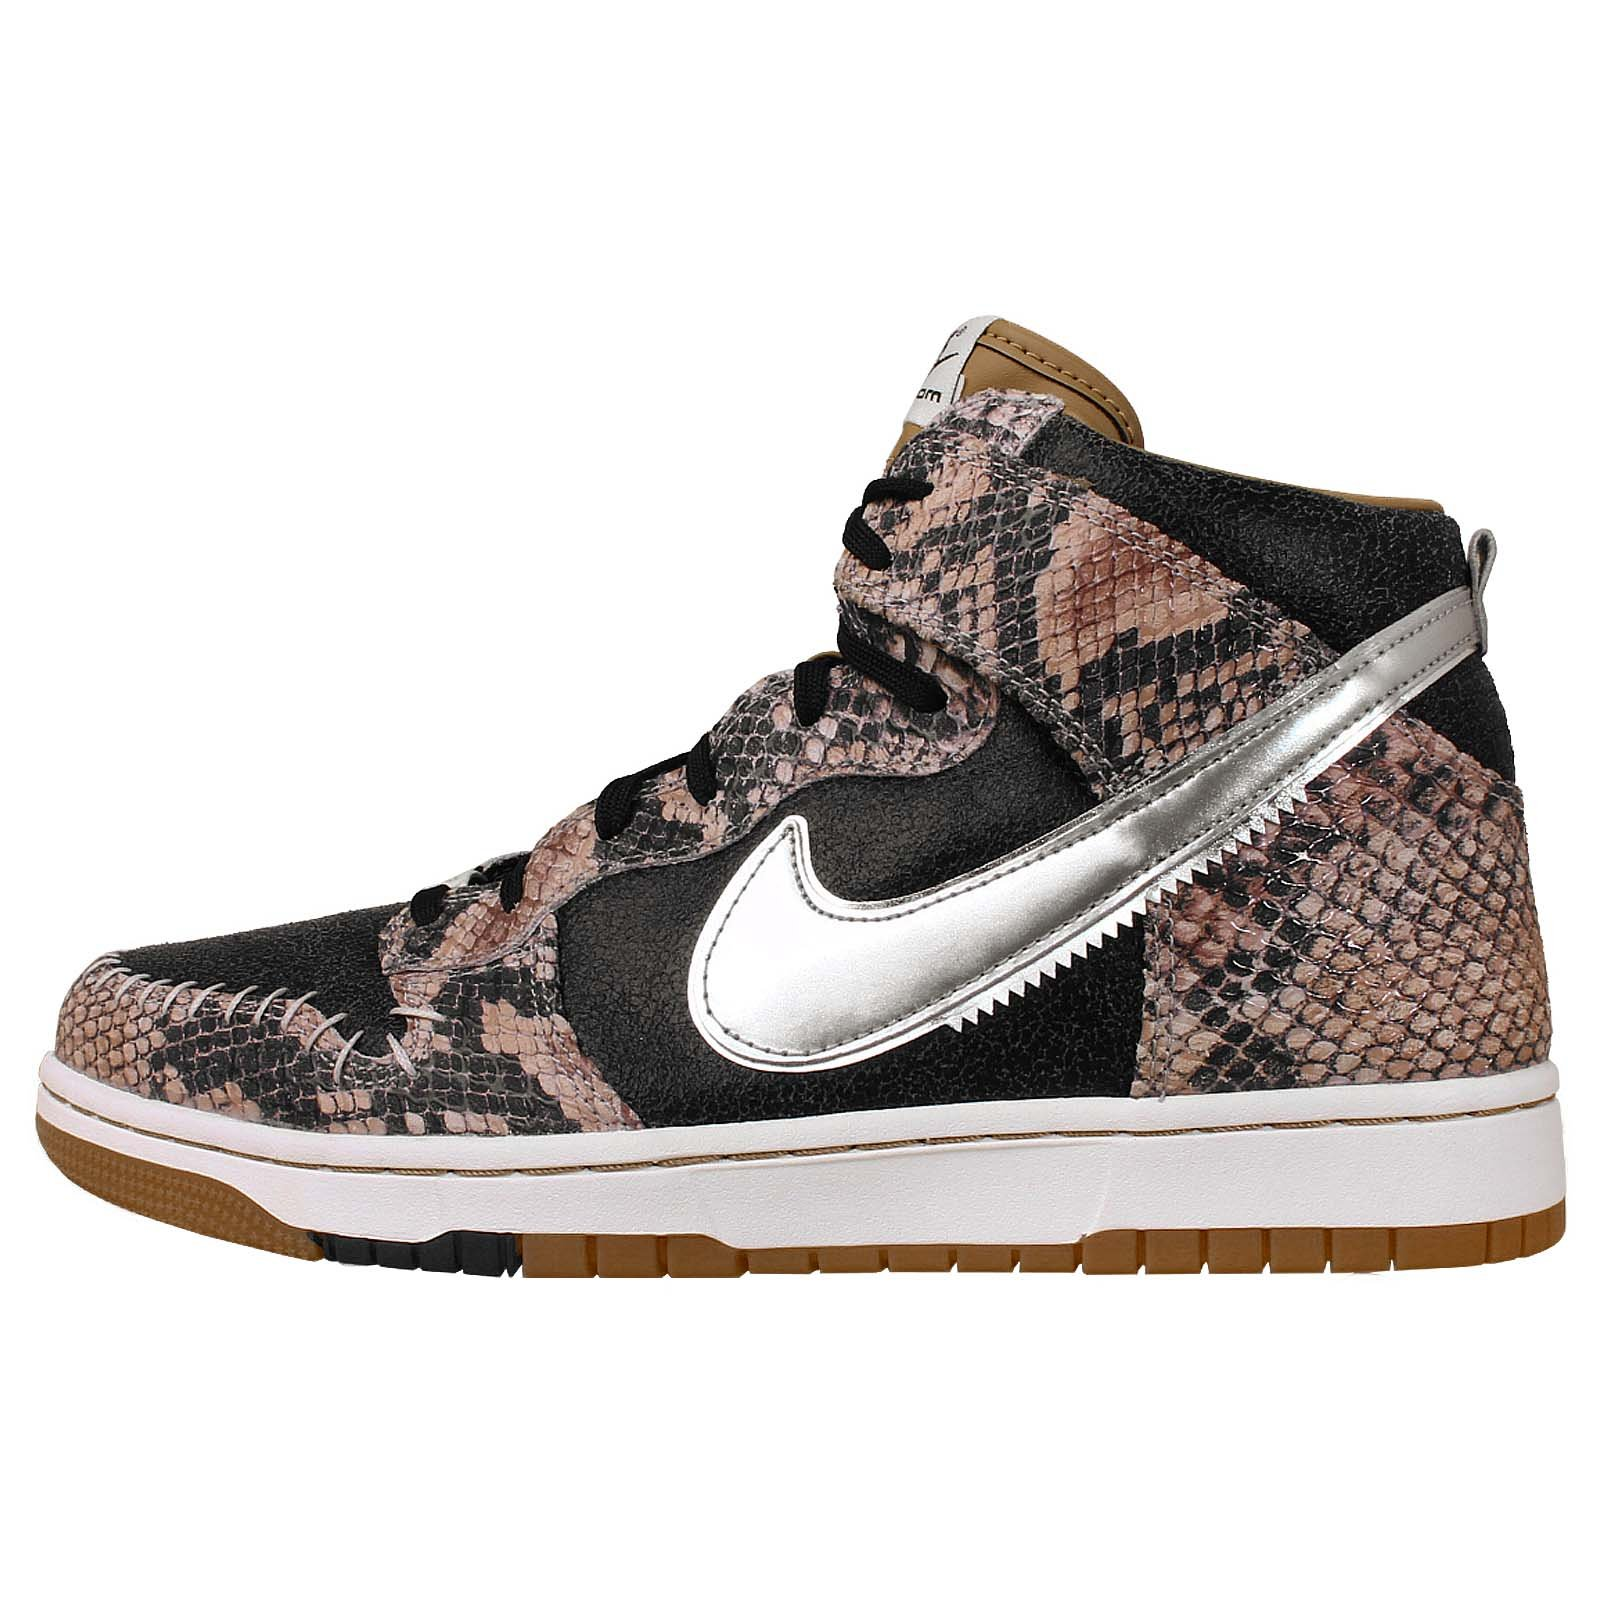 Nike Dunk CMFT Premium QS Mens Basketball Shoes Color: Black/Metallic Silver-Sail